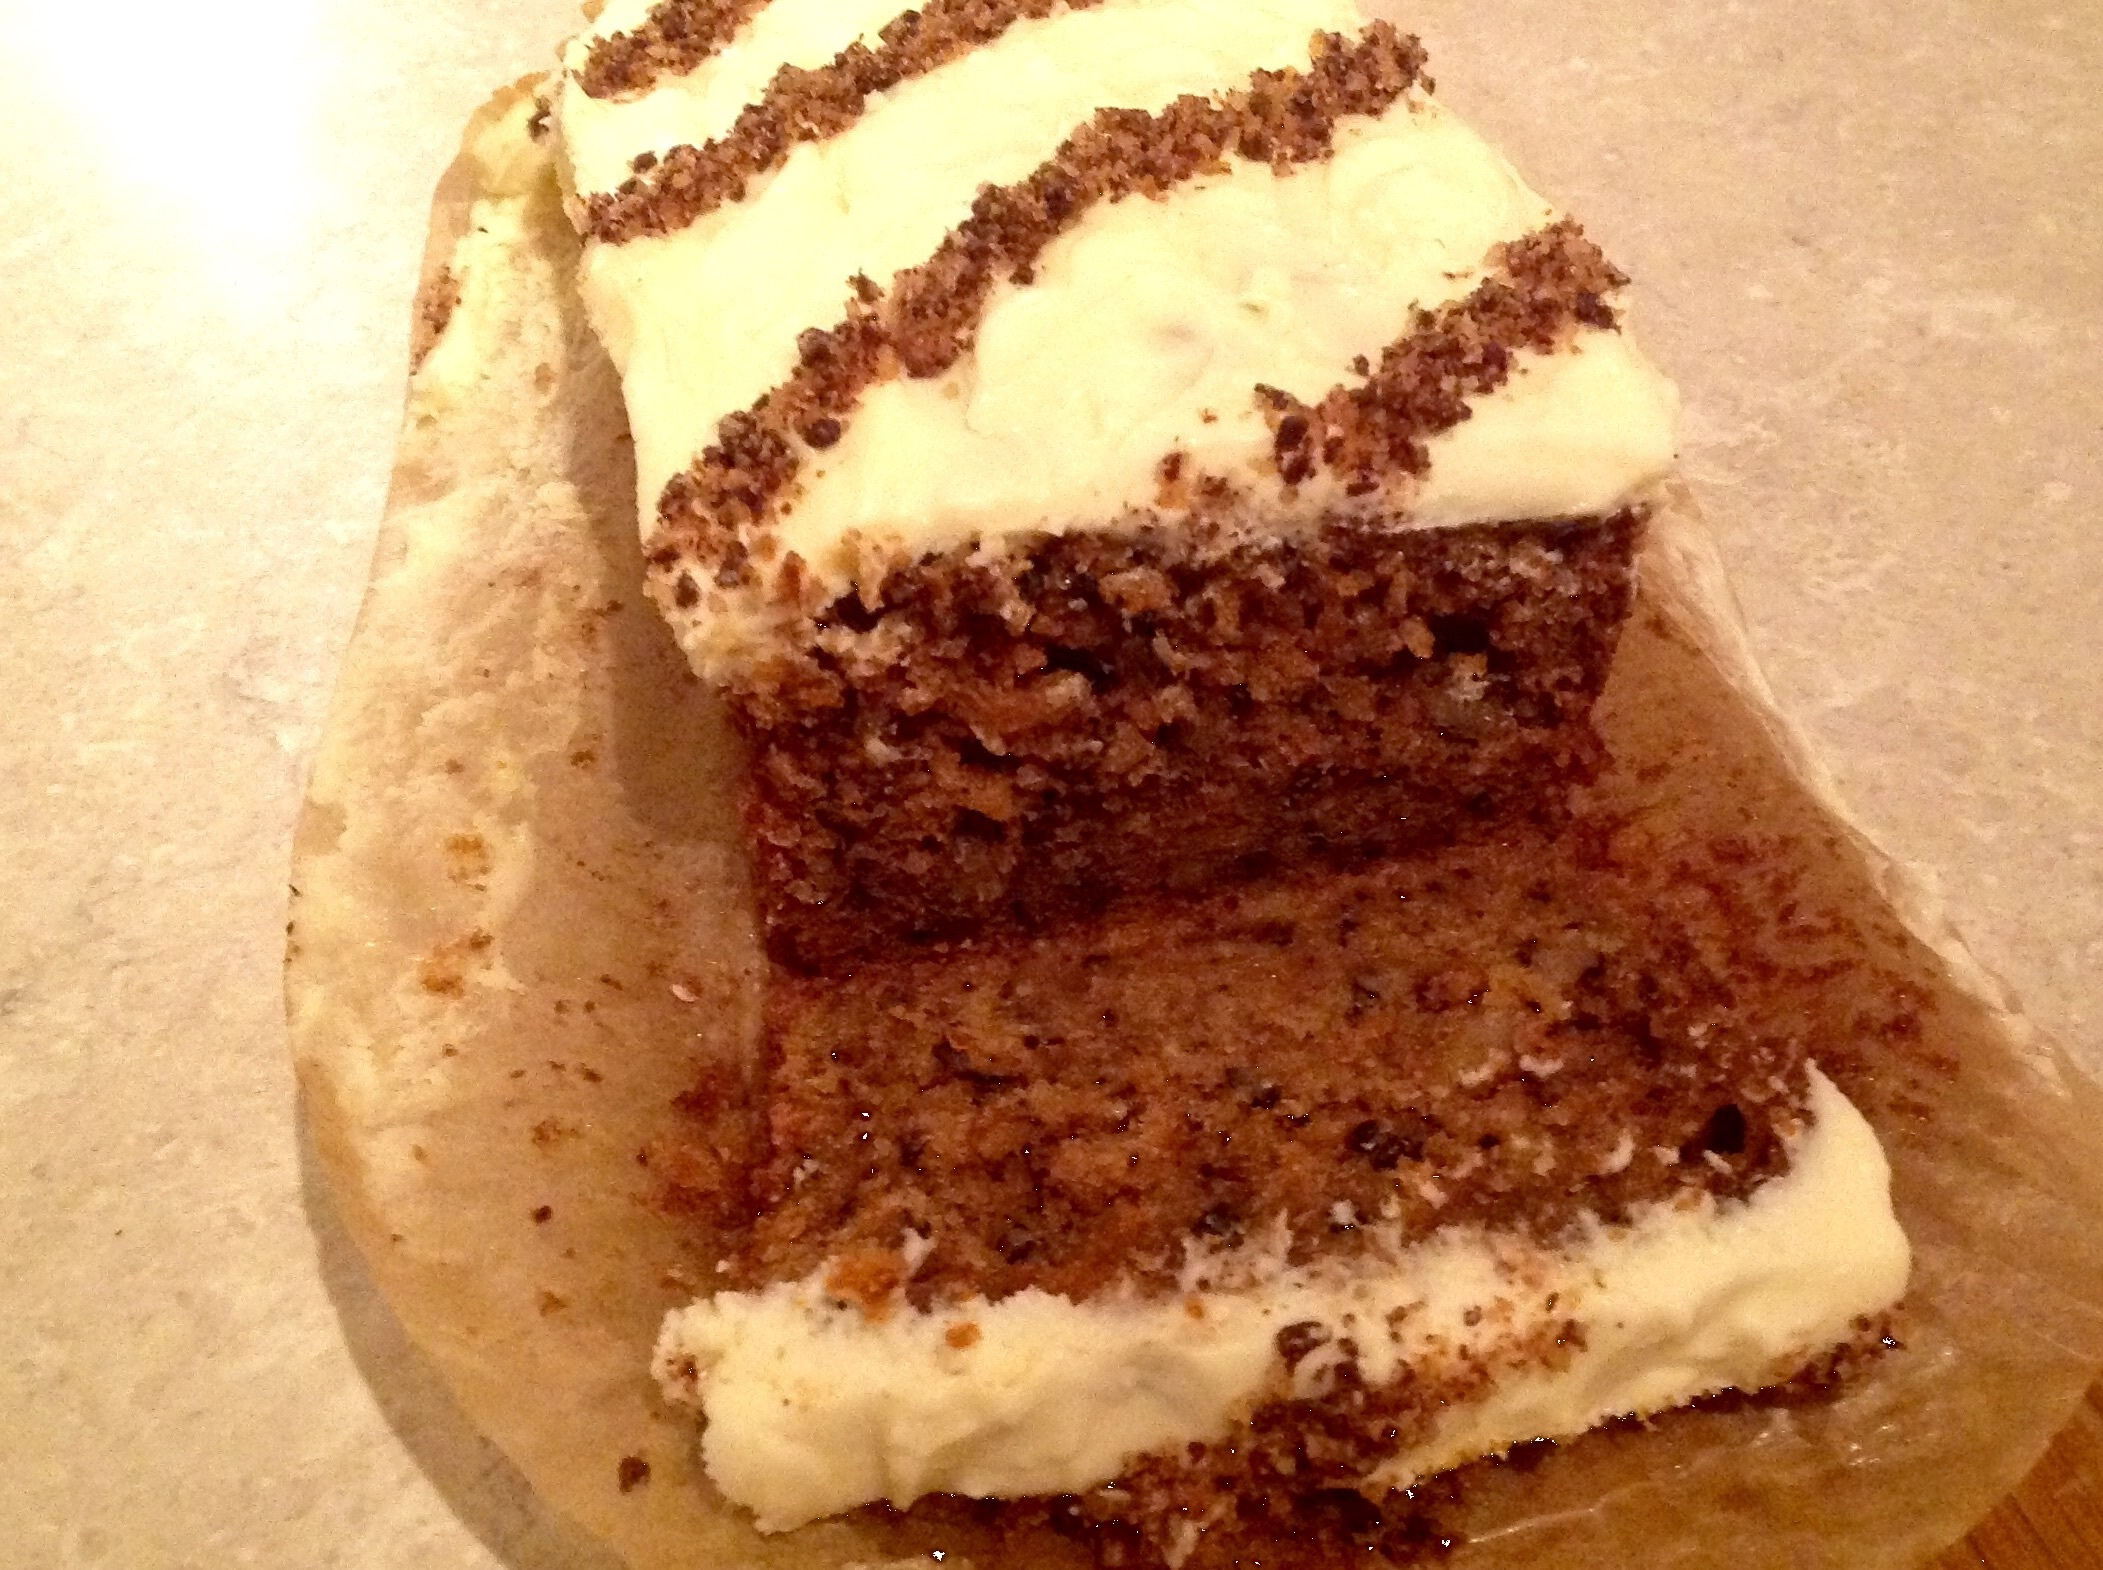 Gluten-free carrot cakes with white chocolate & cream cheese icing